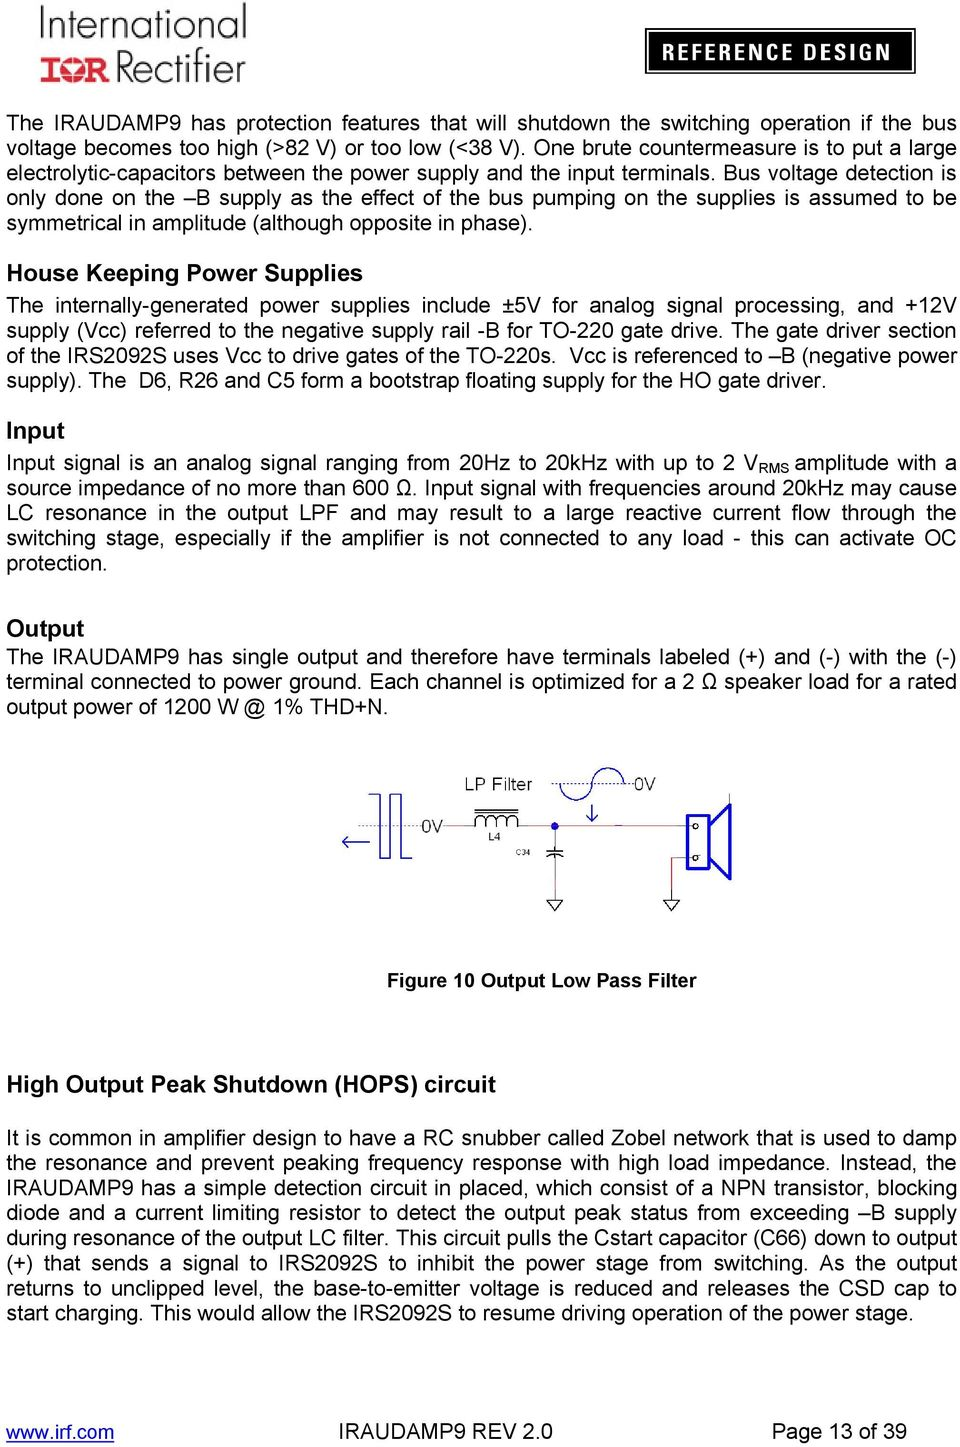 Iraudamp Kw 2 Single Channel Class D Audio Power Amplifier Using 12v 8211 32 V 5a Supply By Lm338 Bus Voltage Detection Is Only Done On The B As Effect Of